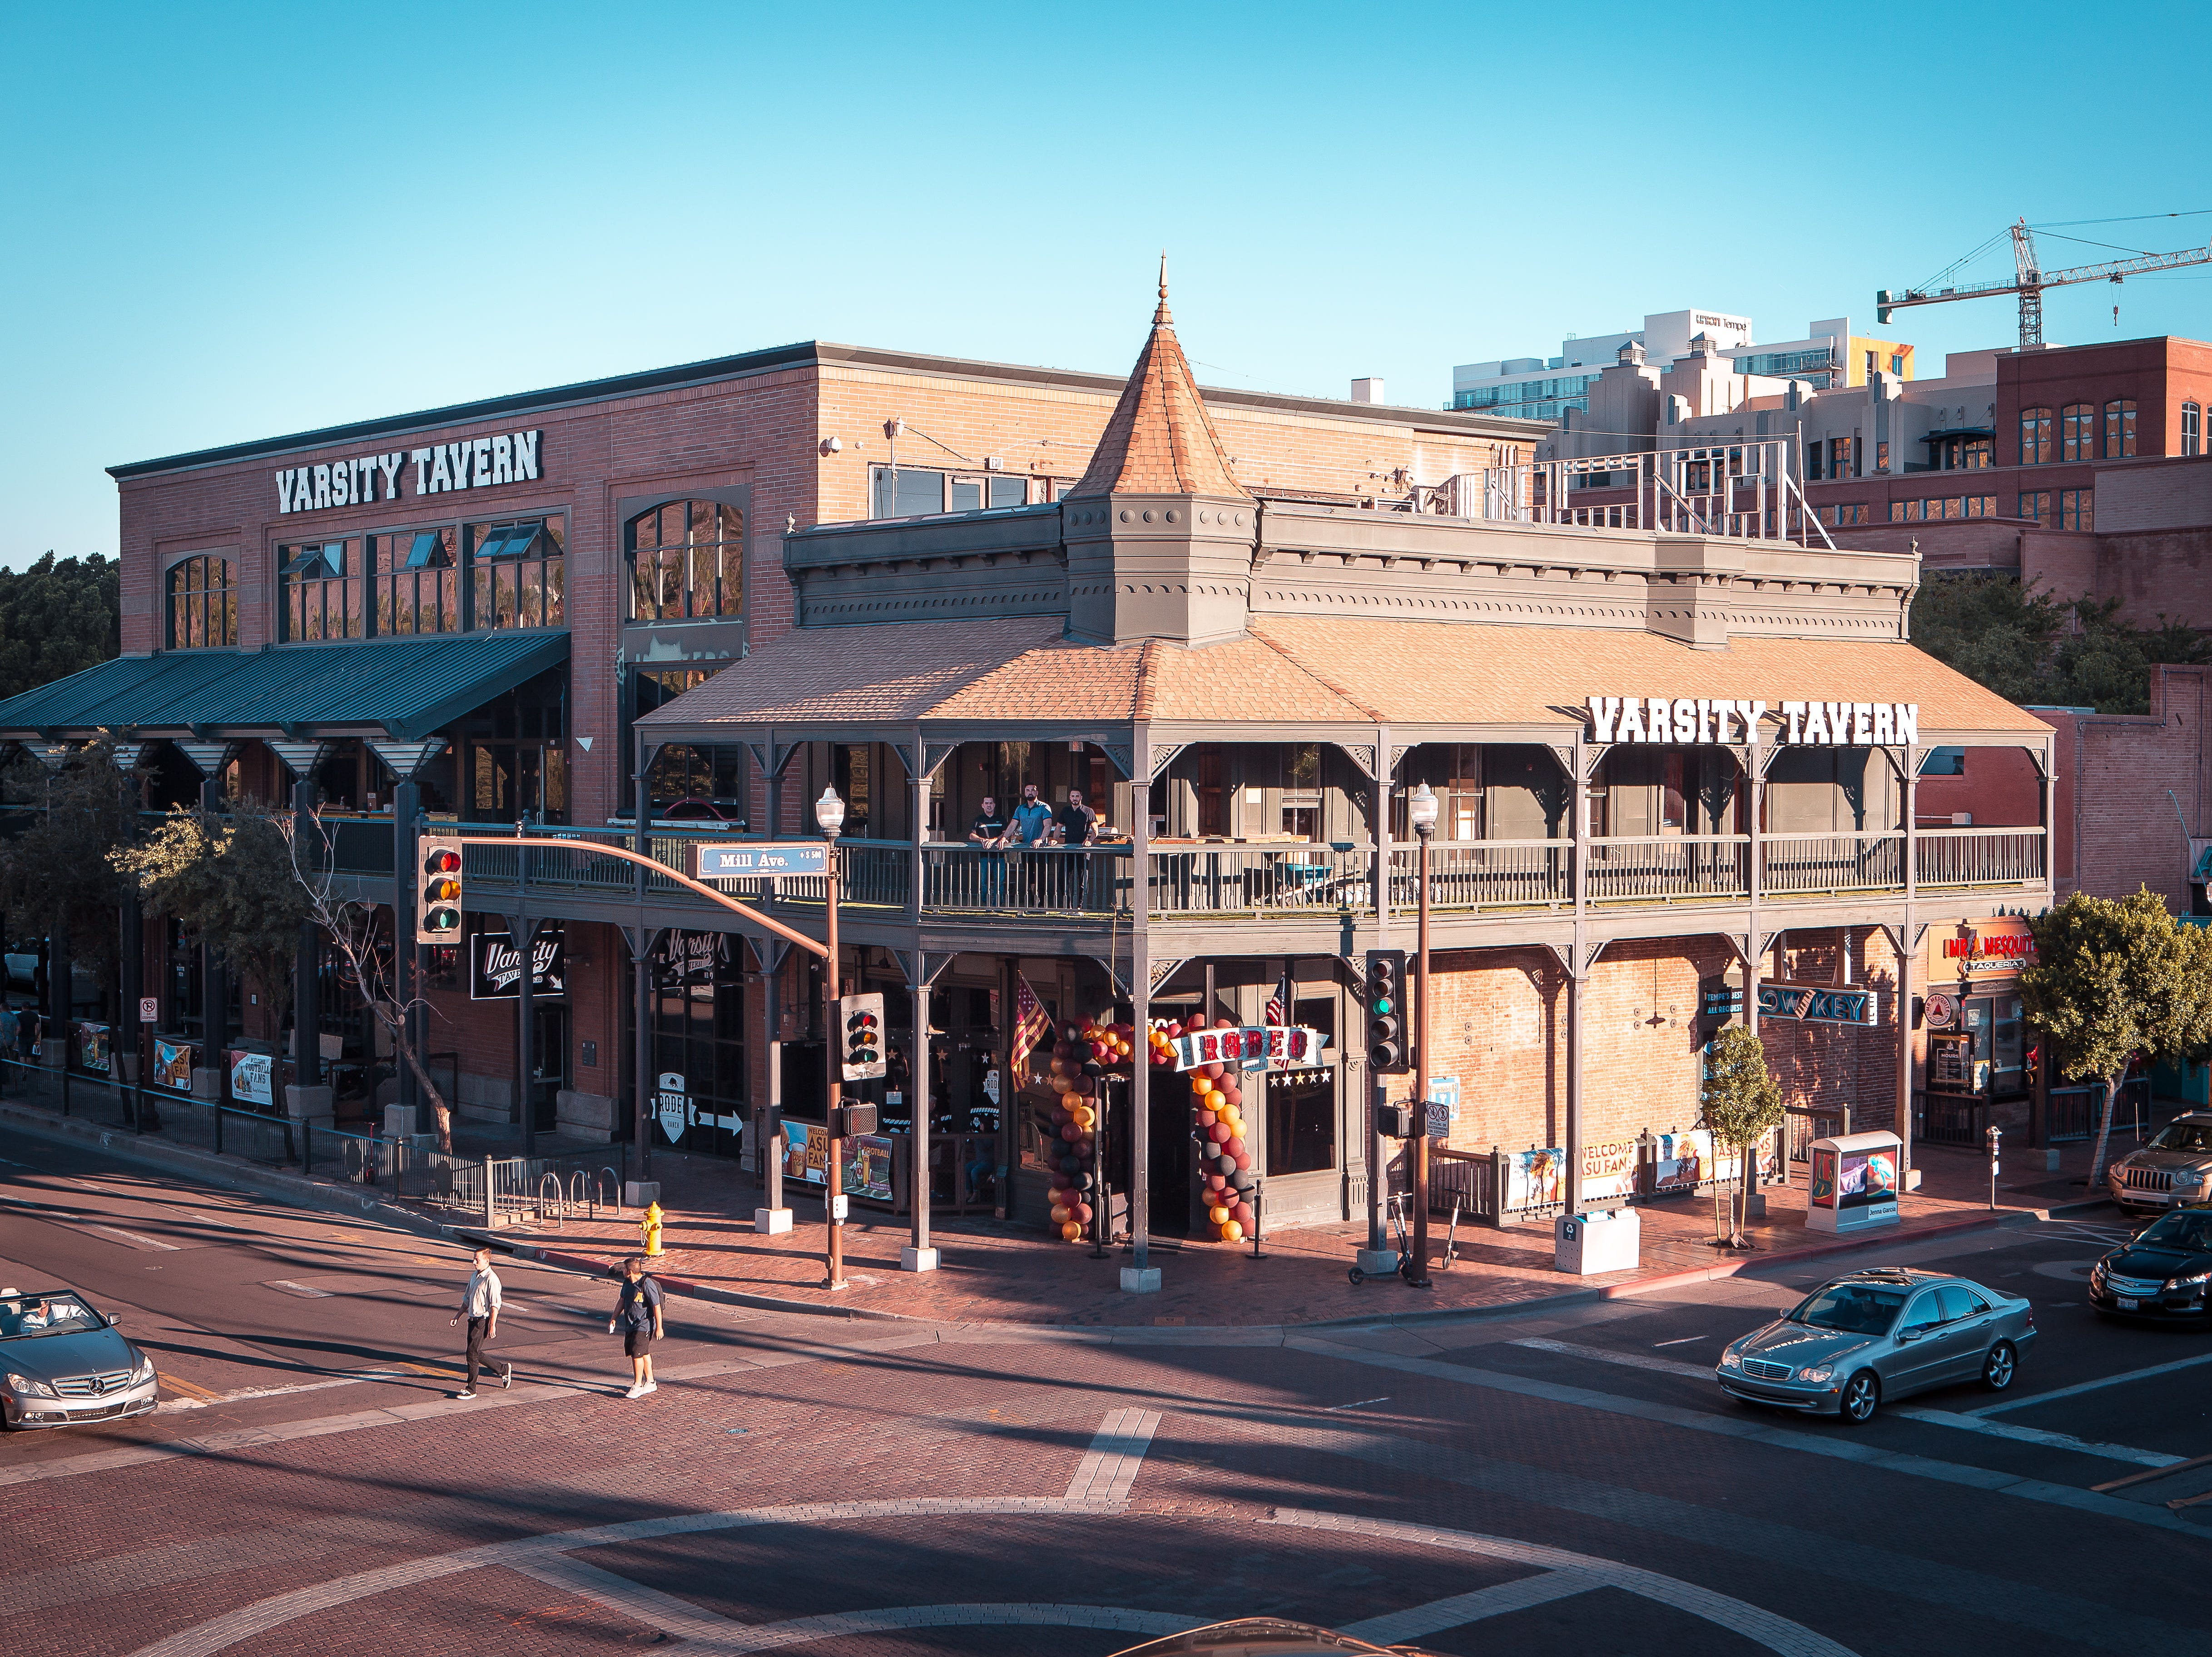 Varsity Tavern is located on the southeast corner of 5th Street and Mill Avenue in downtown Tempe.